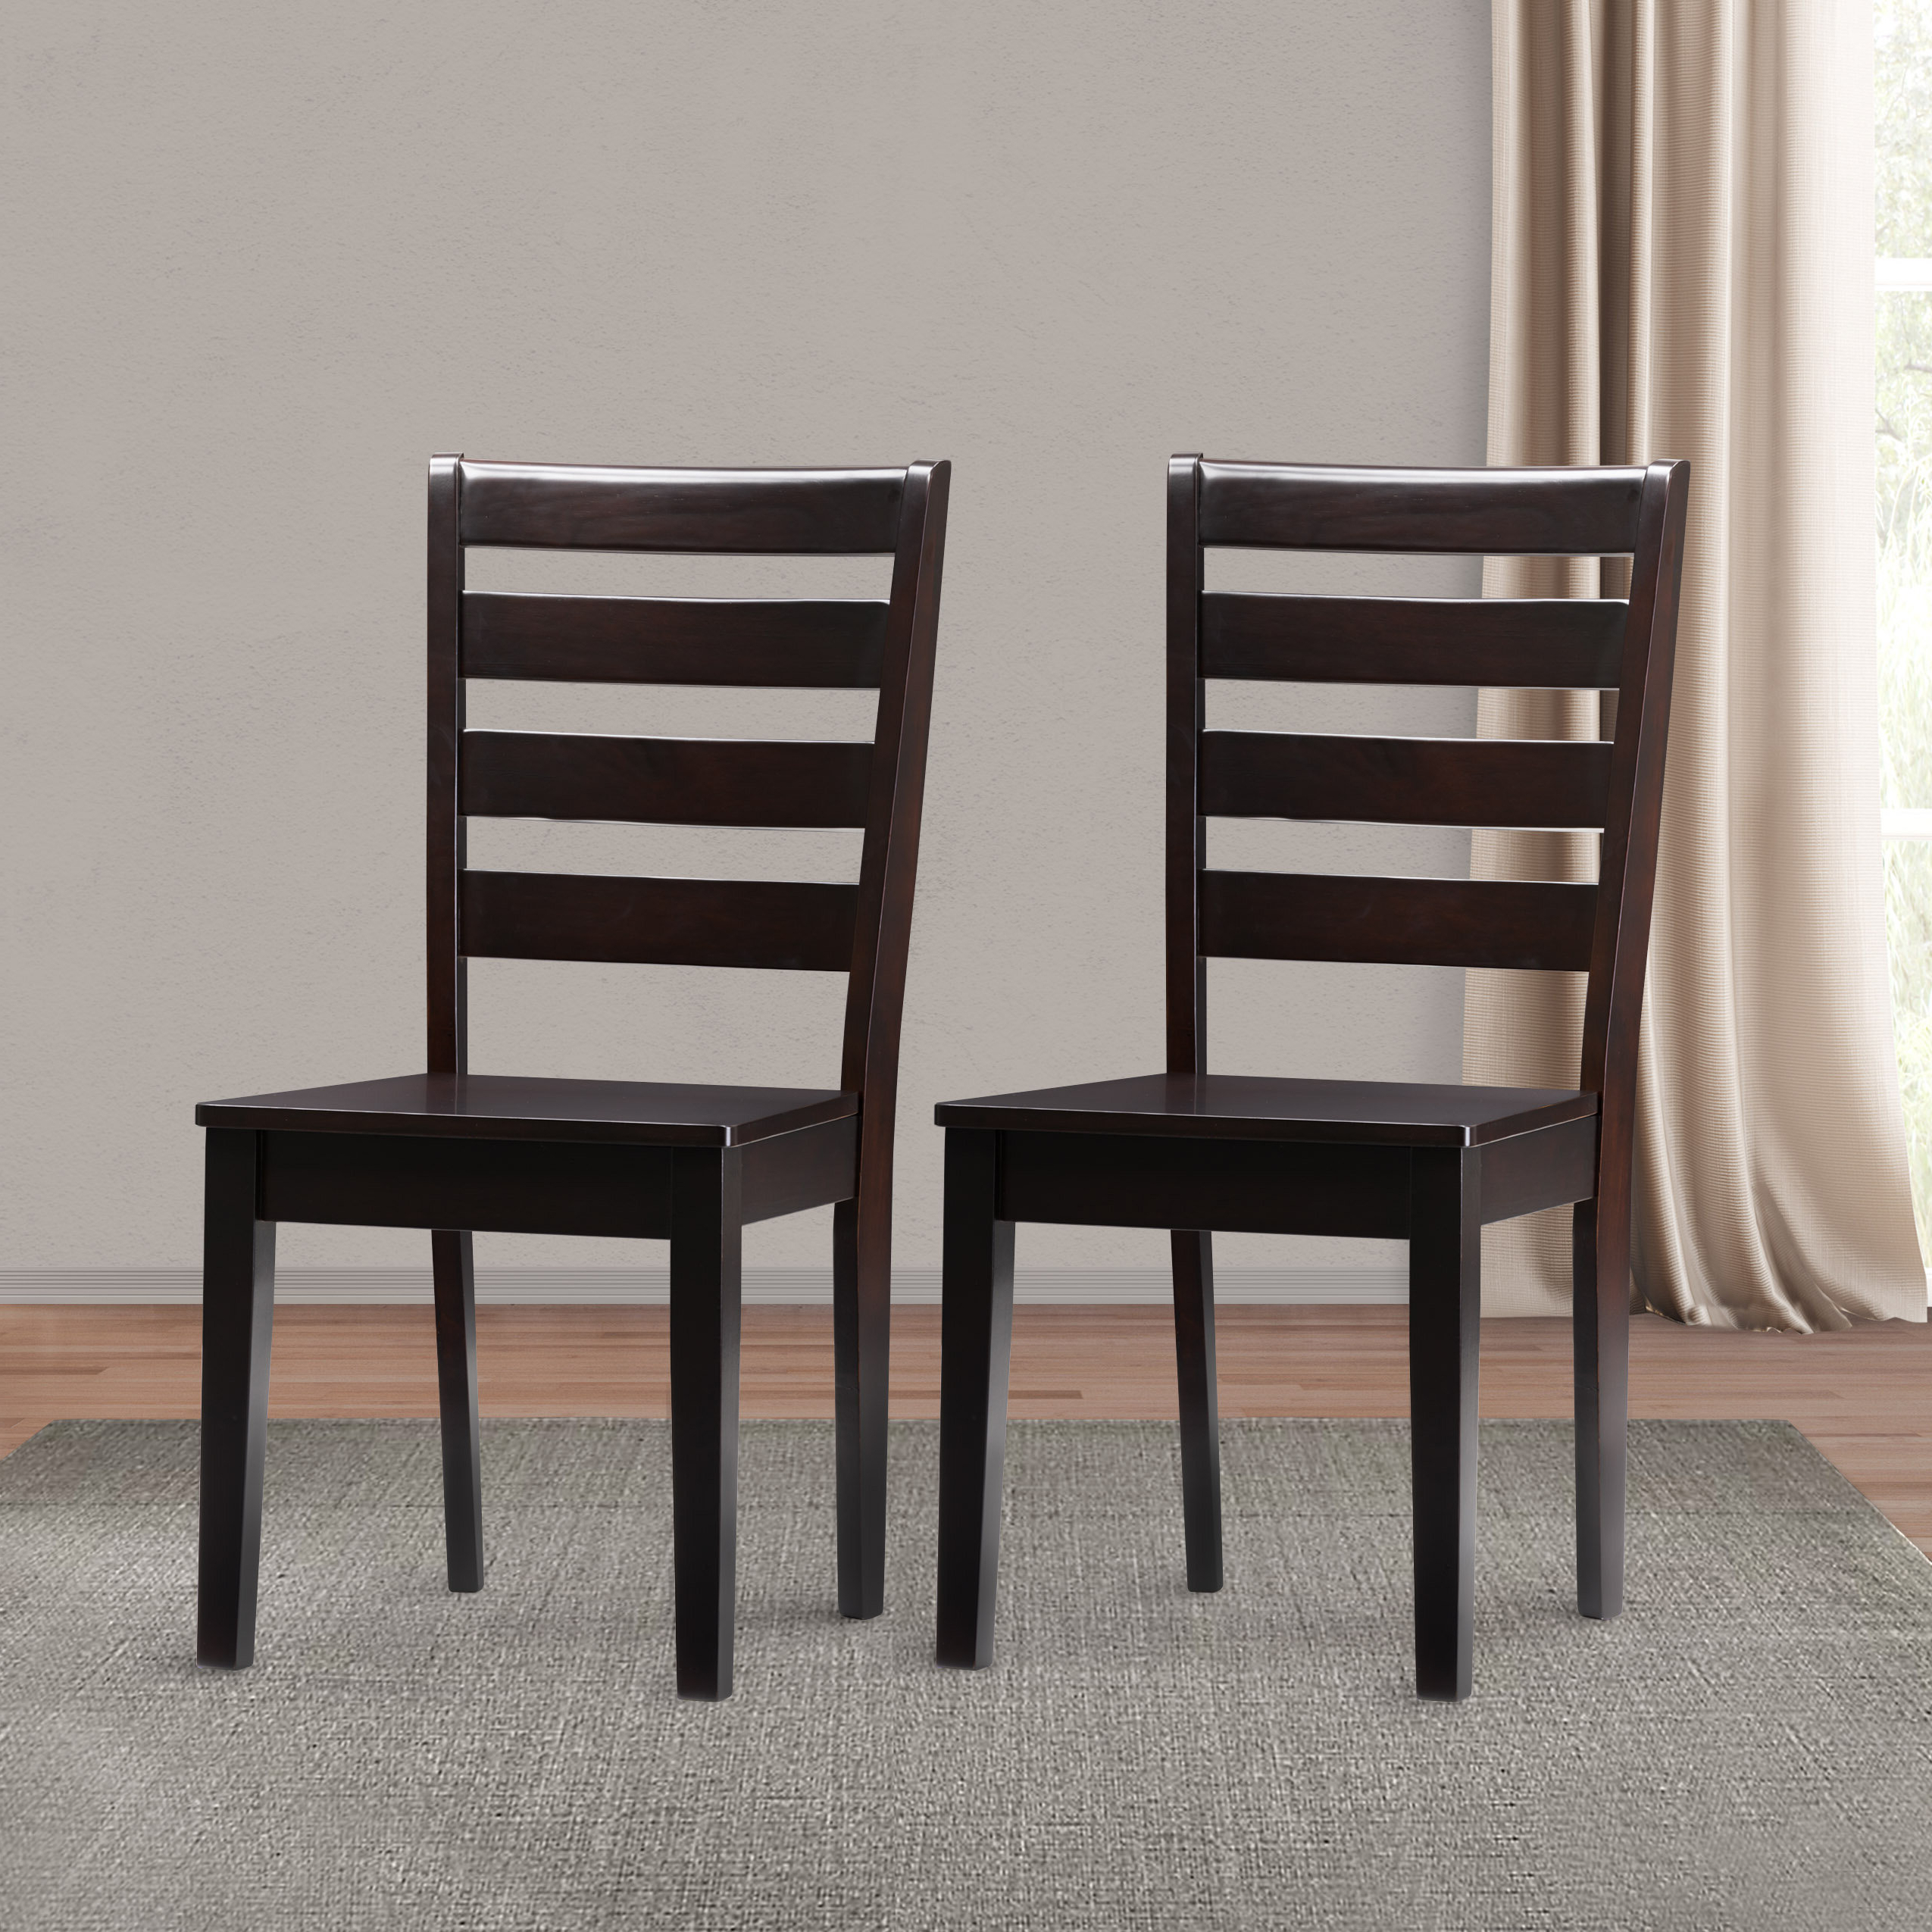 Goodman 5 Piece Solid Wood Dining Sets (Set Of 5) For Most Recently Released Goodman Solid Wood Dining Chair (View 8 of 20)